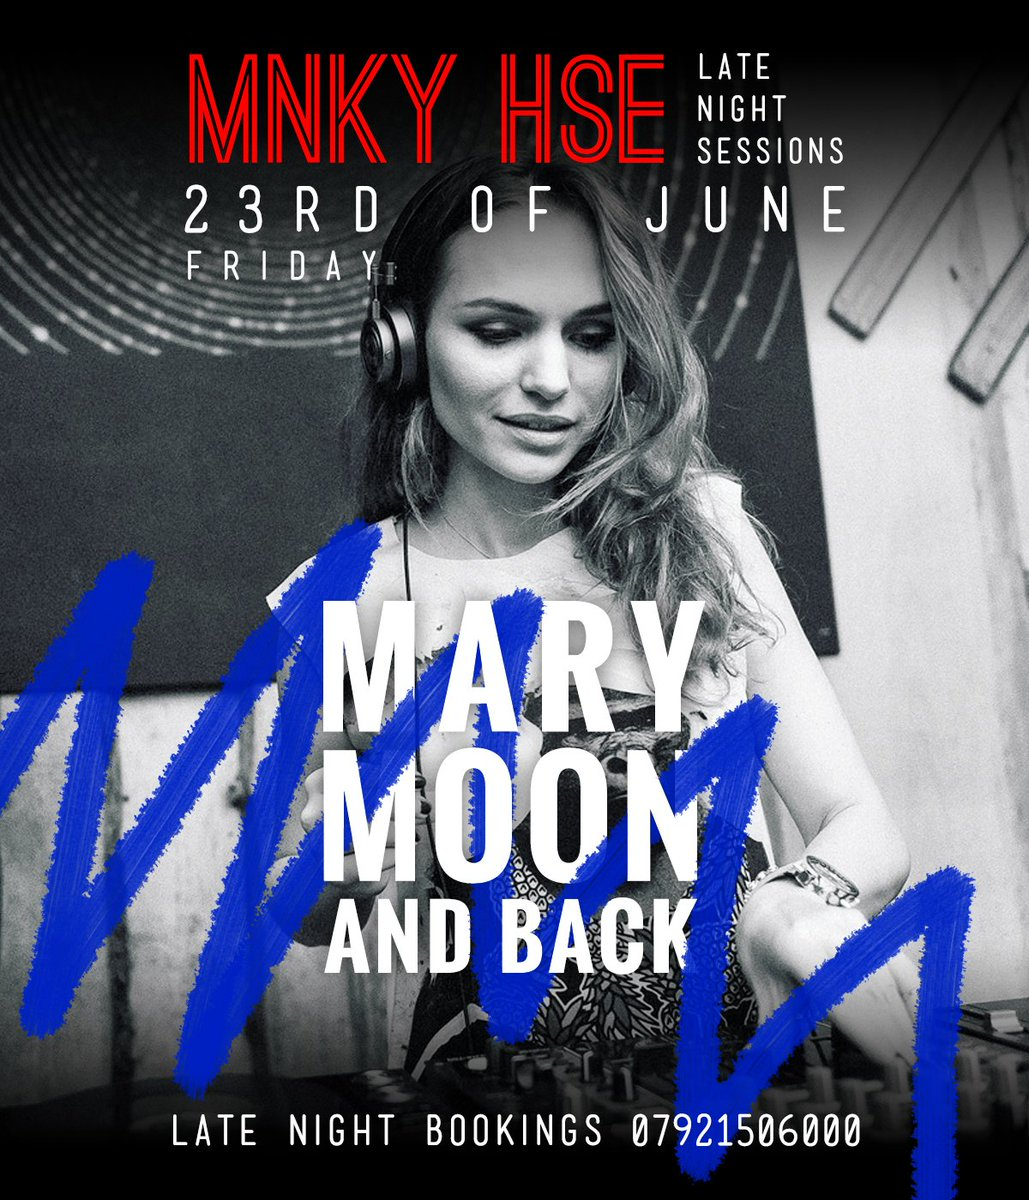 Marymoon is back in London! Catch her musical ryths tonight at @mnky_hse #dj #london #mnkyhse #djset #fridaynight #fridayfeeling #marymoon<br>http://pic.twitter.com/SAeYUQrrIX